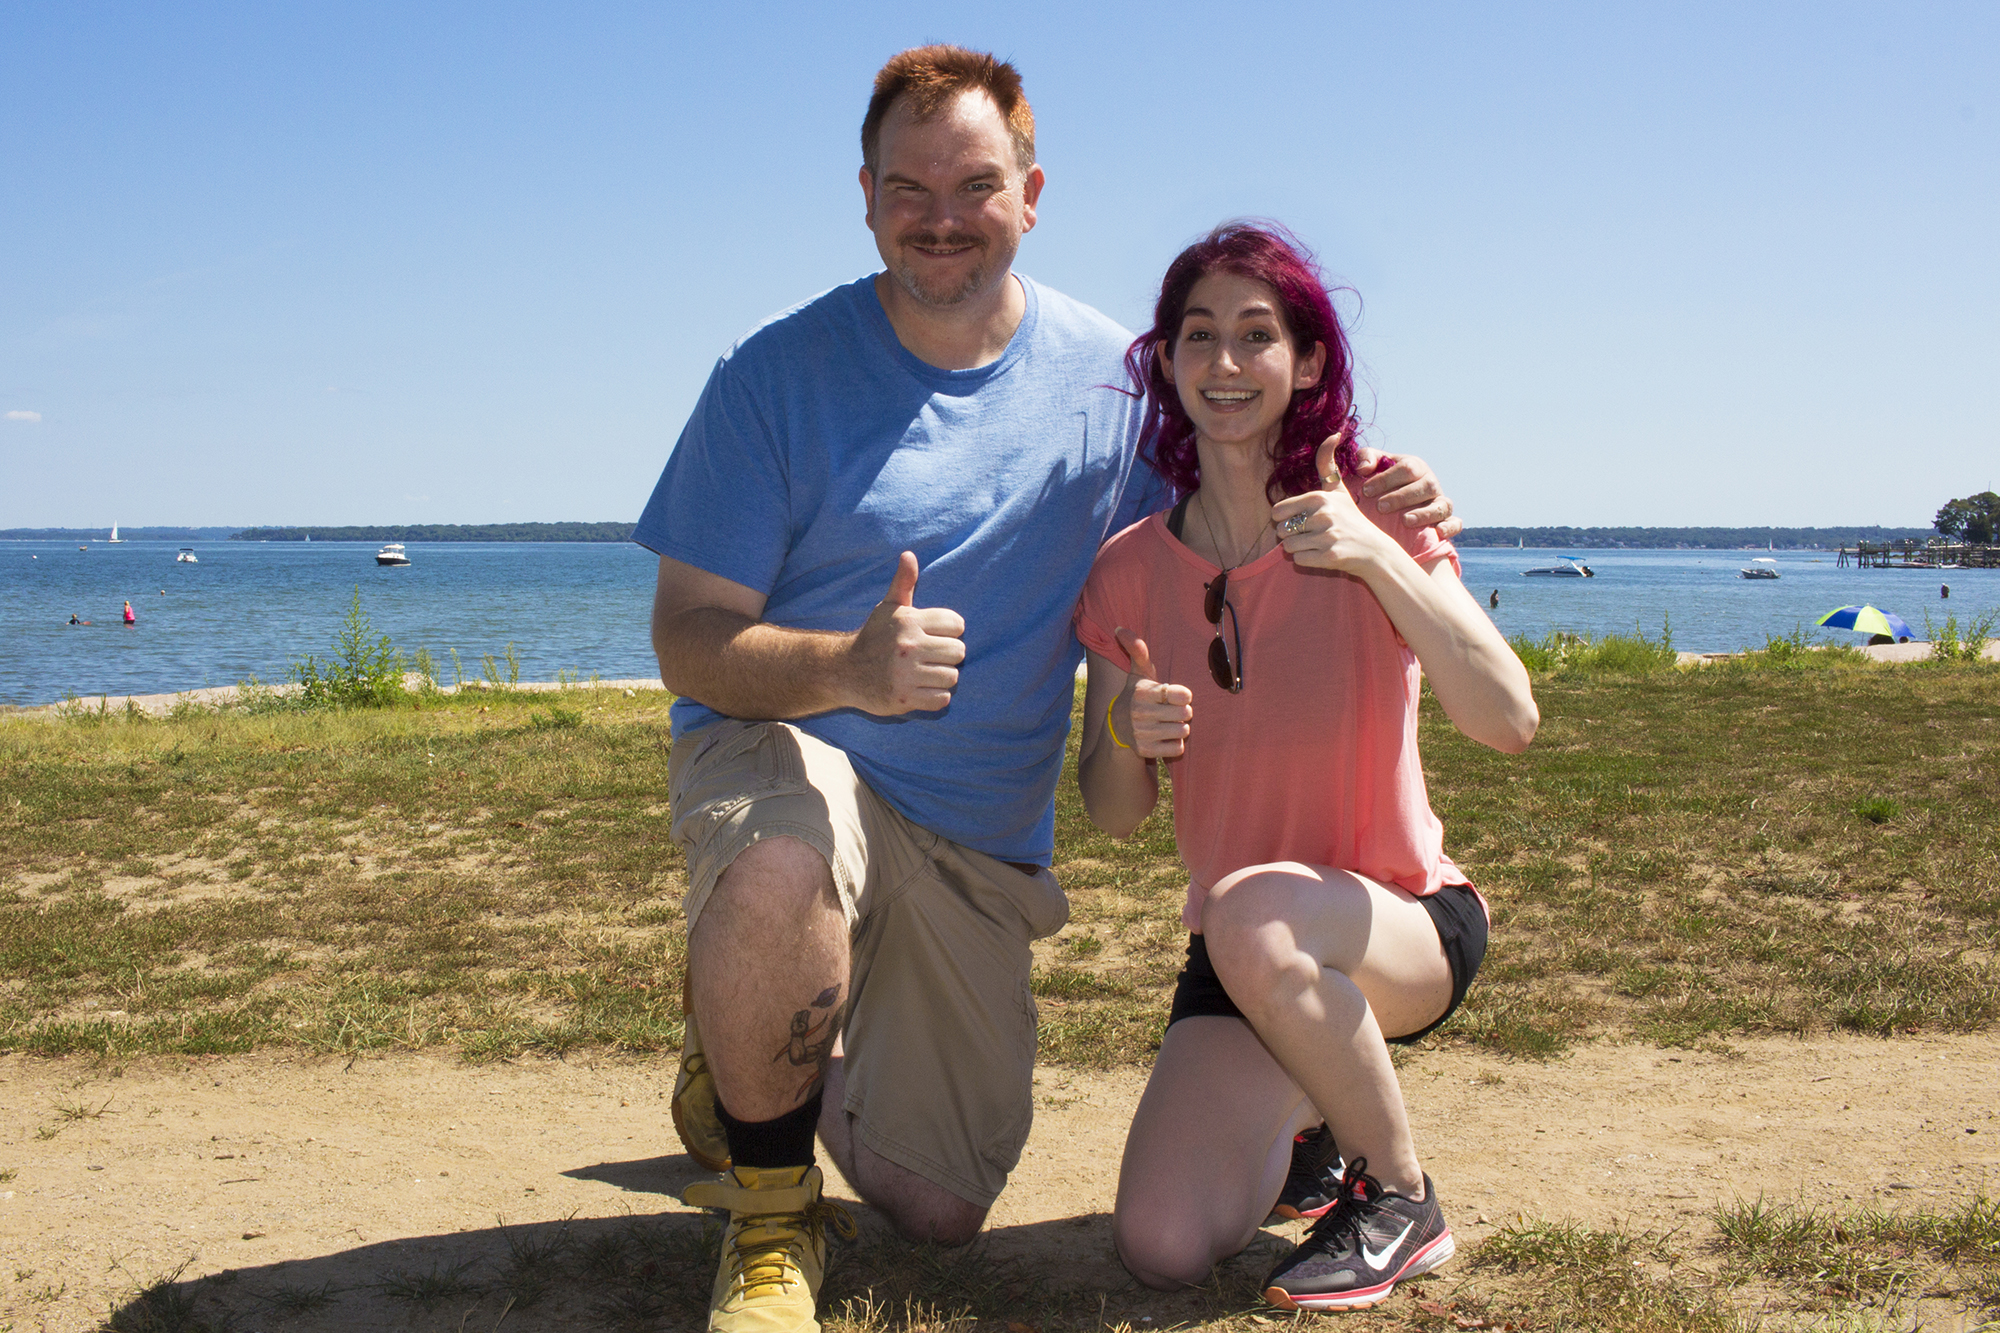 Movie Maker Mike Messier with Producer/Director Geena Matuson in Rhode Island, late 2016.